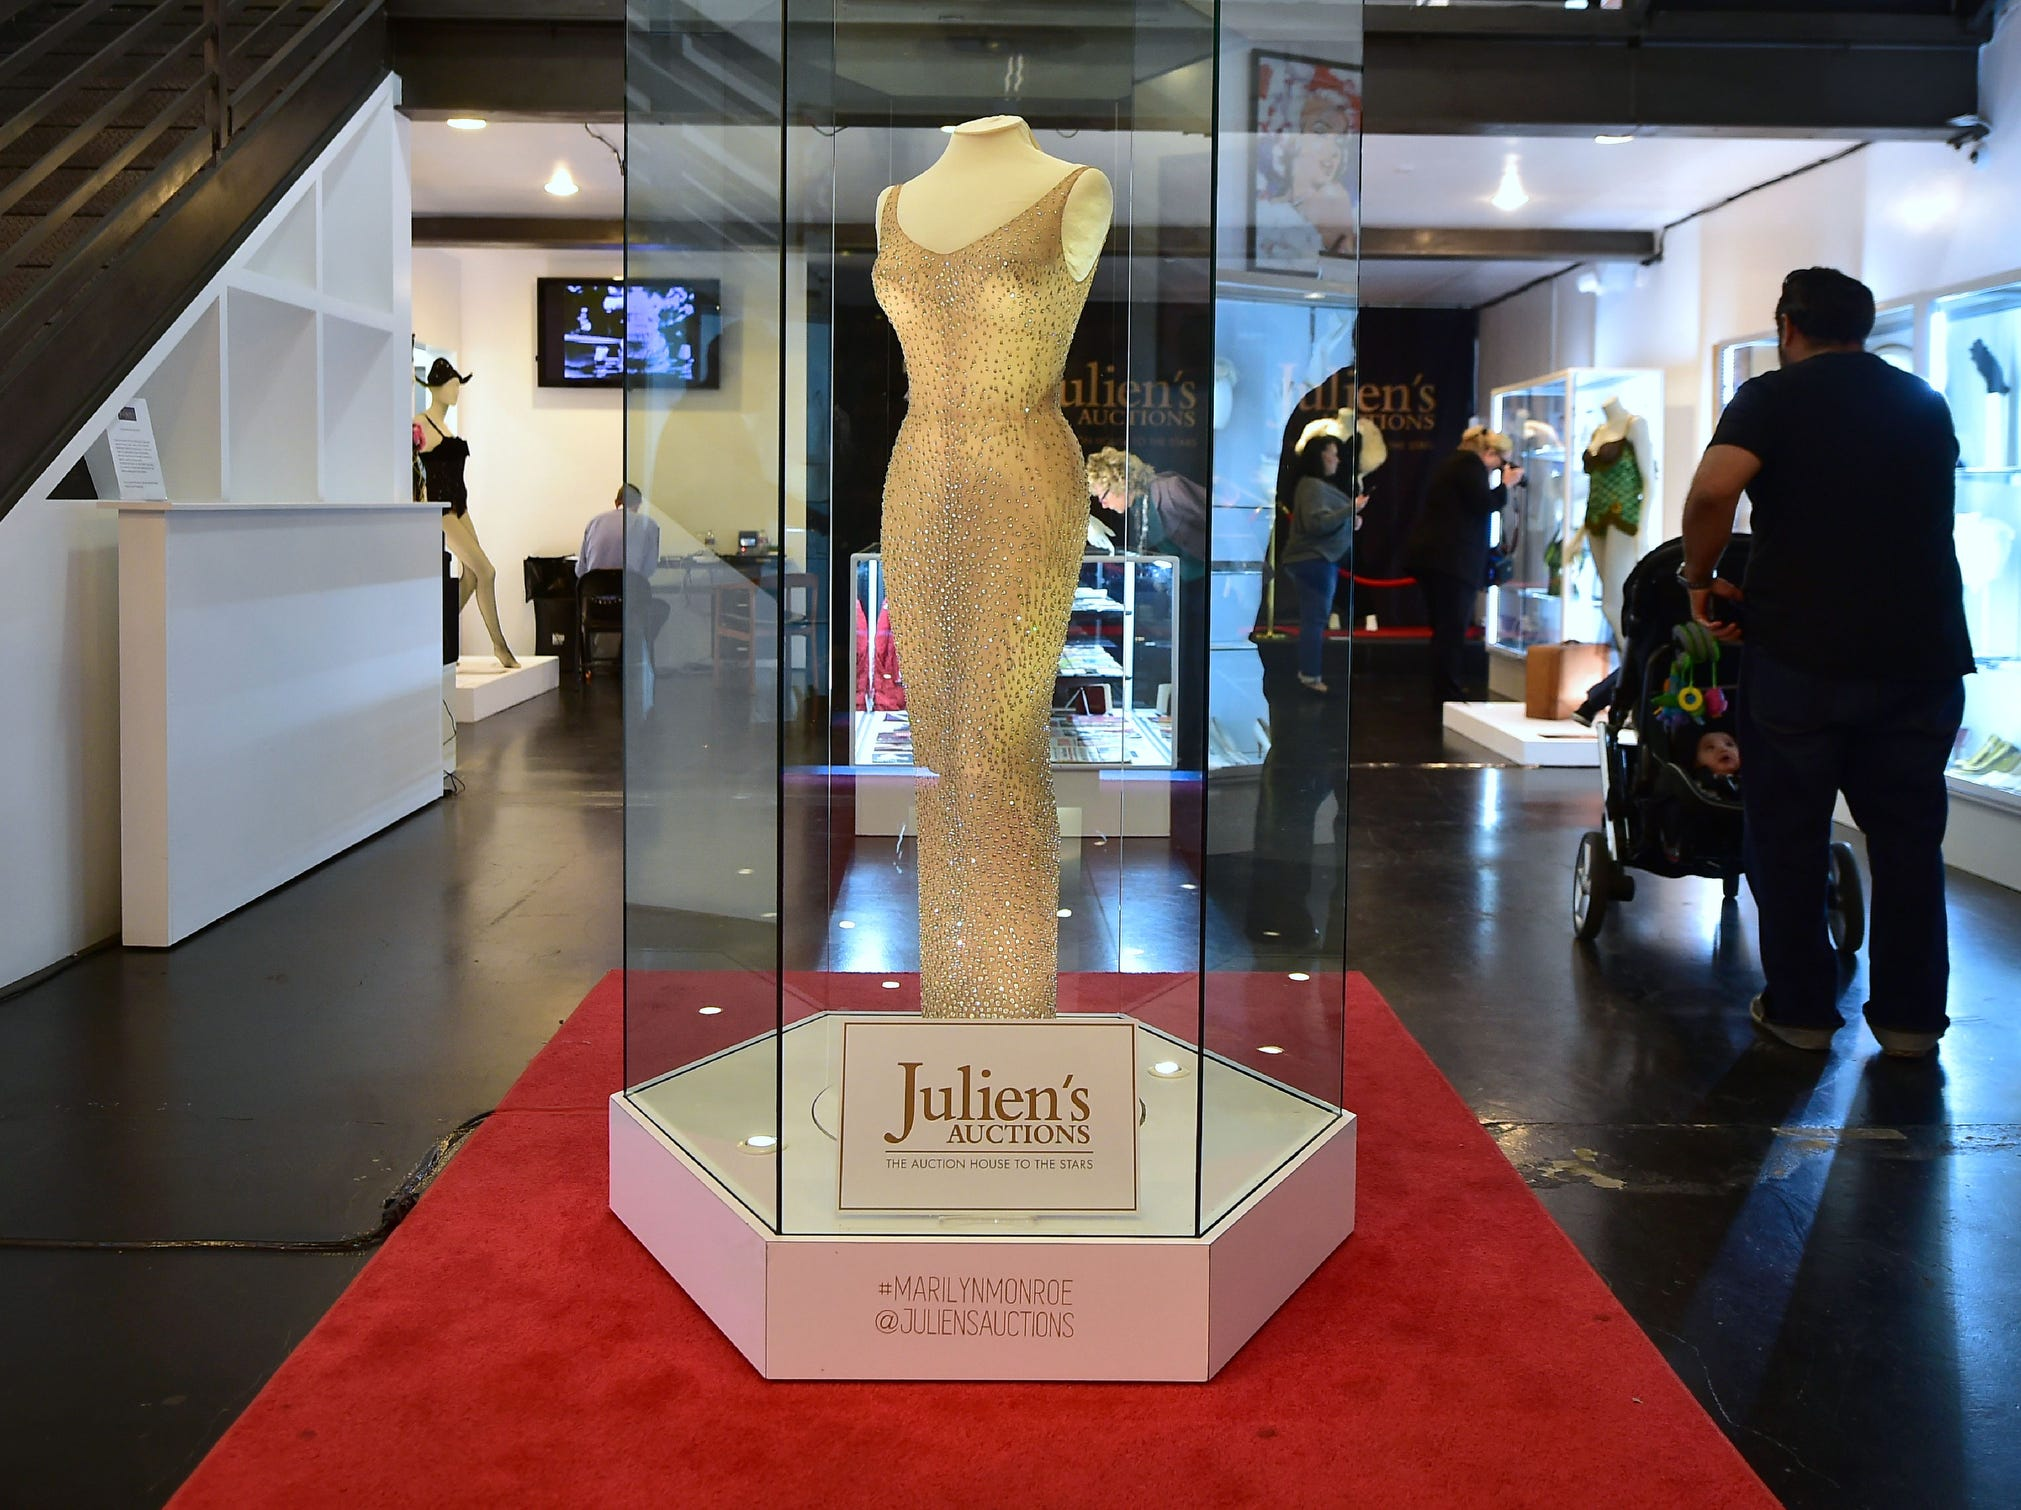 The dress worn by Marilyn Monroe when she sang 'Happy Birthday Mr. President' to  President John F. Kennedy in May 1962, is displayed in a glass enclosure at Julien's Auction House in Los Angeles, on Nov. 17, 2016, ahead of its auction.  Julien's sold the  iconic dress for the record price of $4.81 million USD toRipley's Believe it or Not.